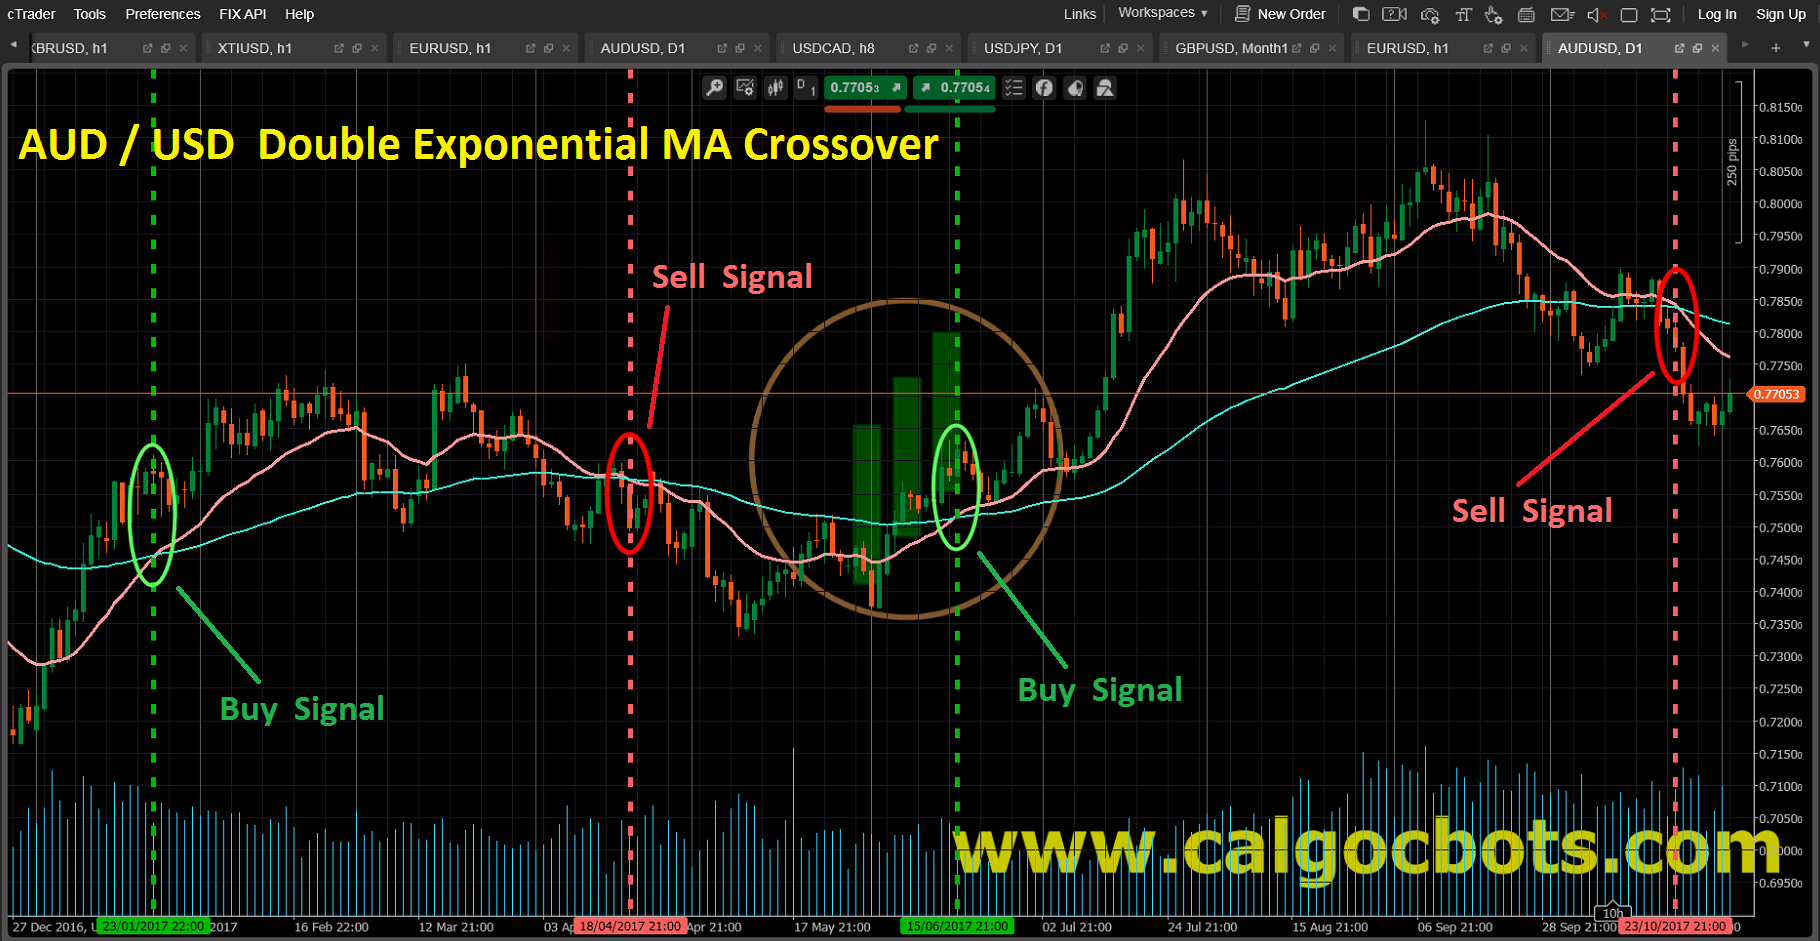 Double Exponential MA crossover_AUD_USD_Candlestick_chart_cAlgo_cBots_cTrader_01